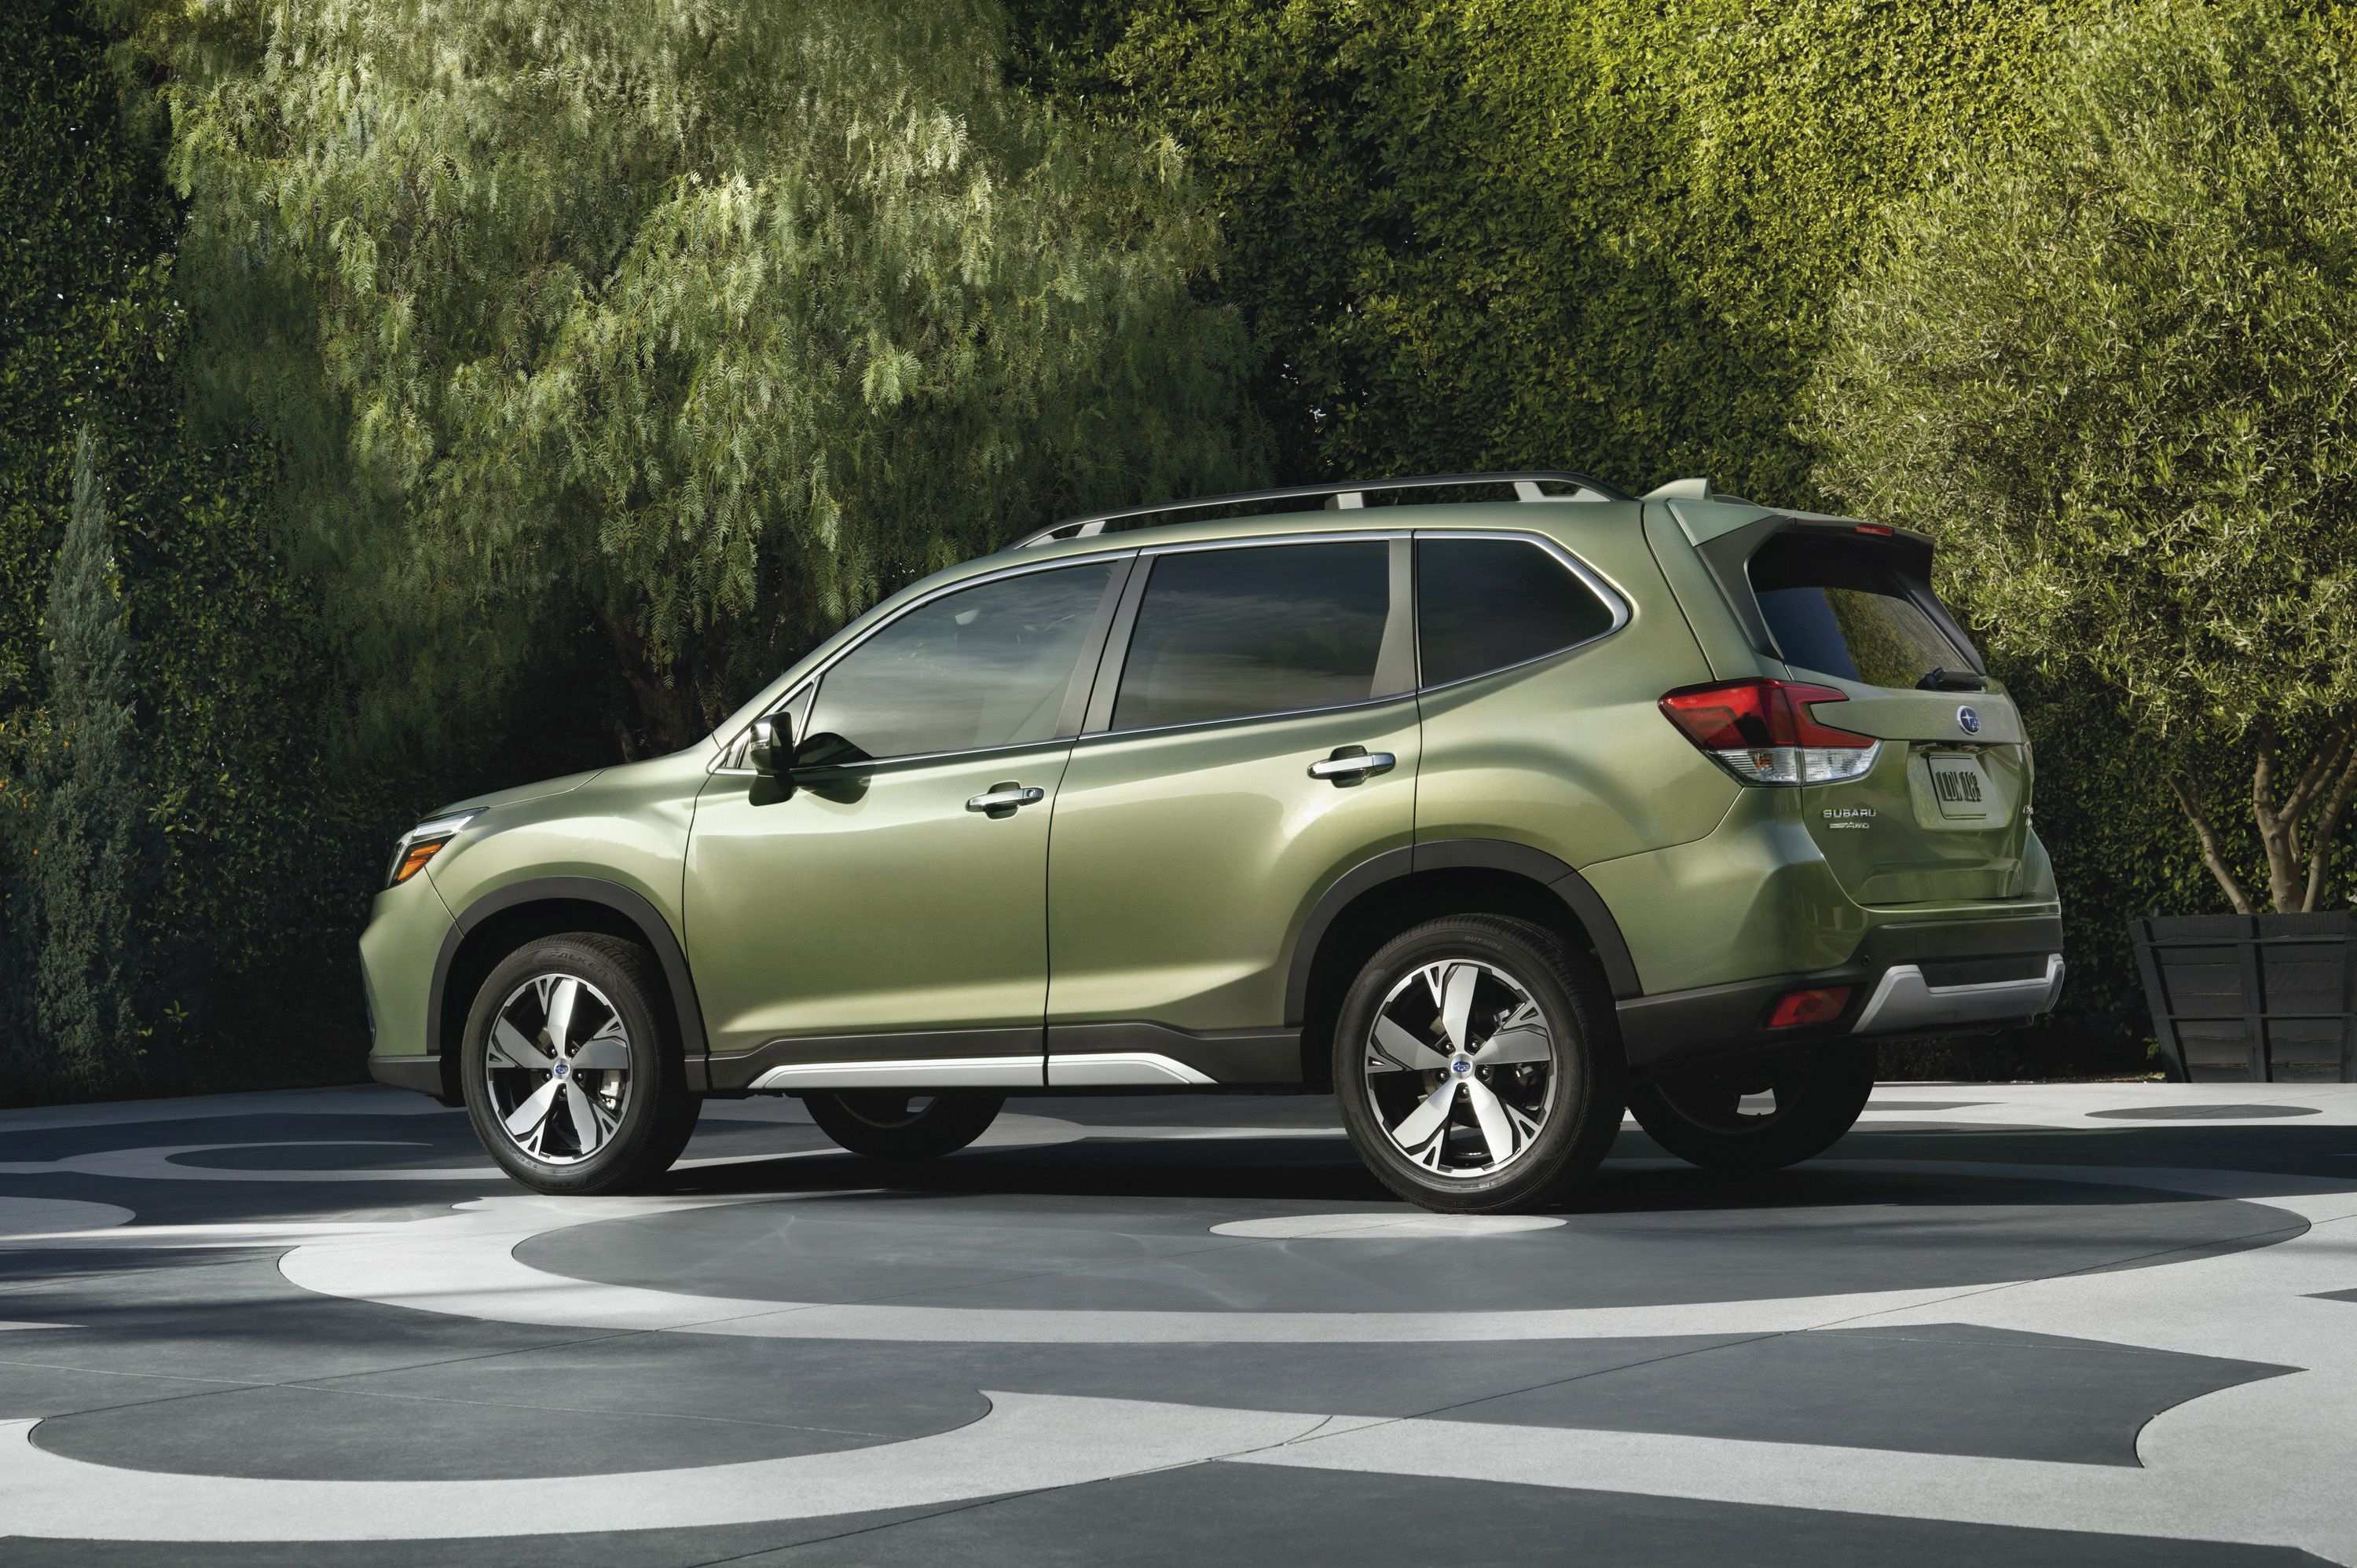 91 The Subaru 2020 Forester Dimensions Rumors with Subaru 2020 Forester Dimensions